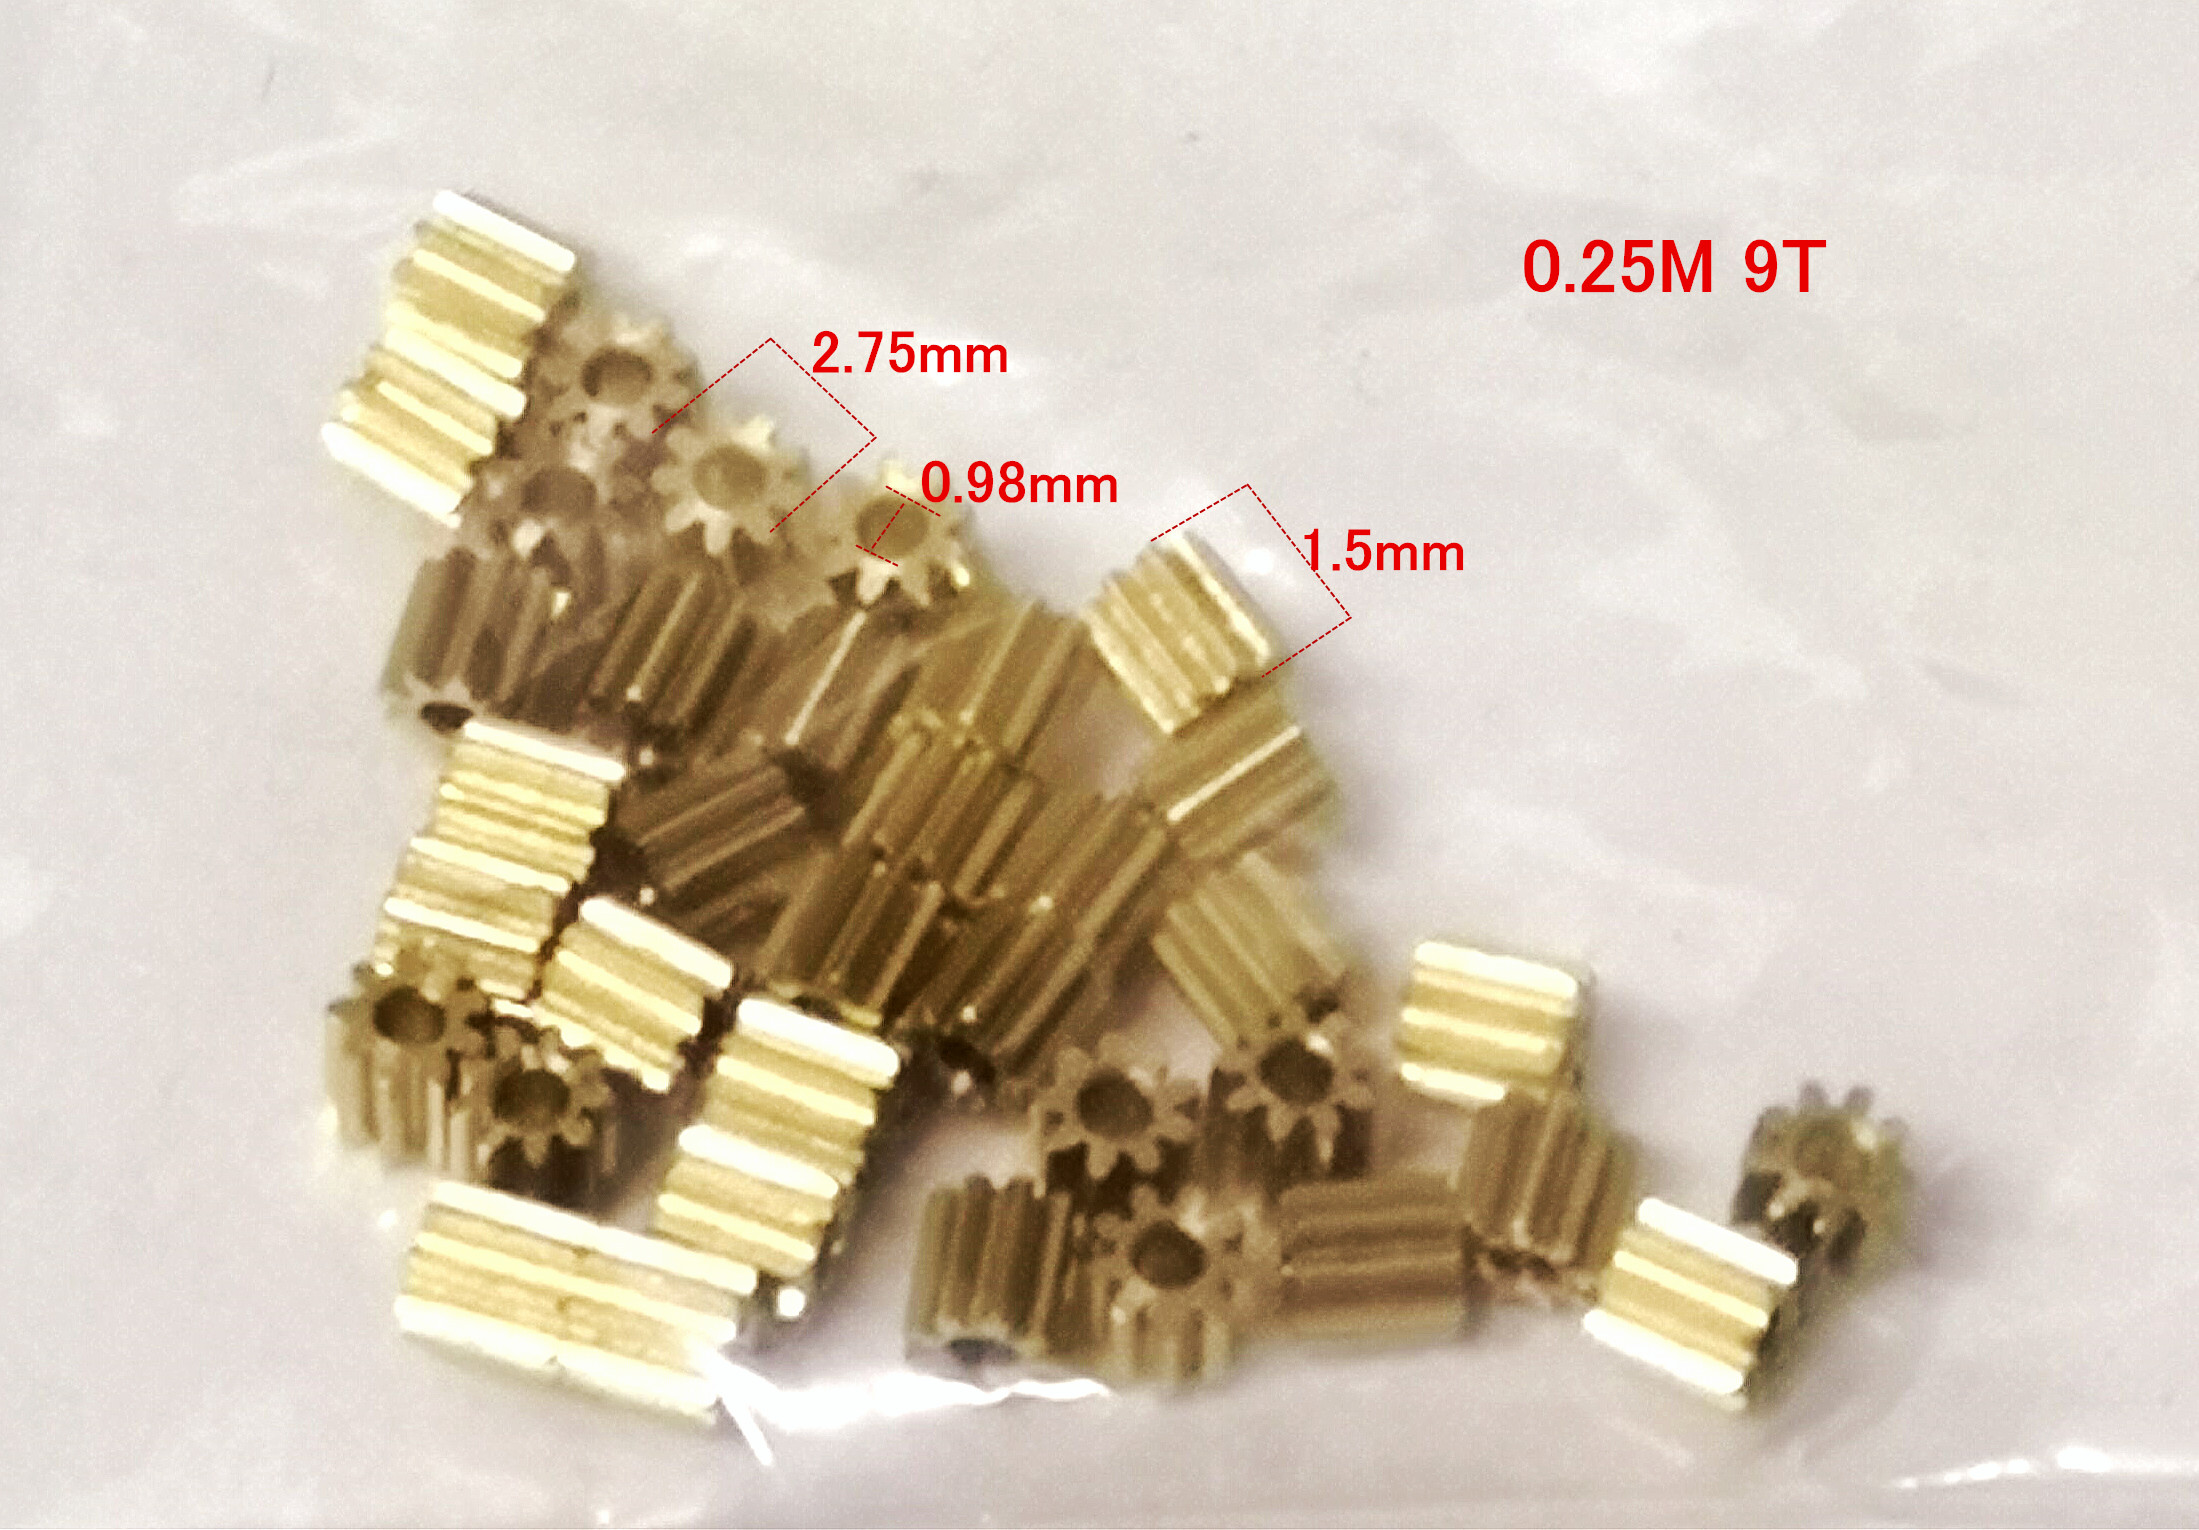 0.25M 9T 9 Teeth Machinery Small Gear Metal Copper Hole 1mm Tight Fit